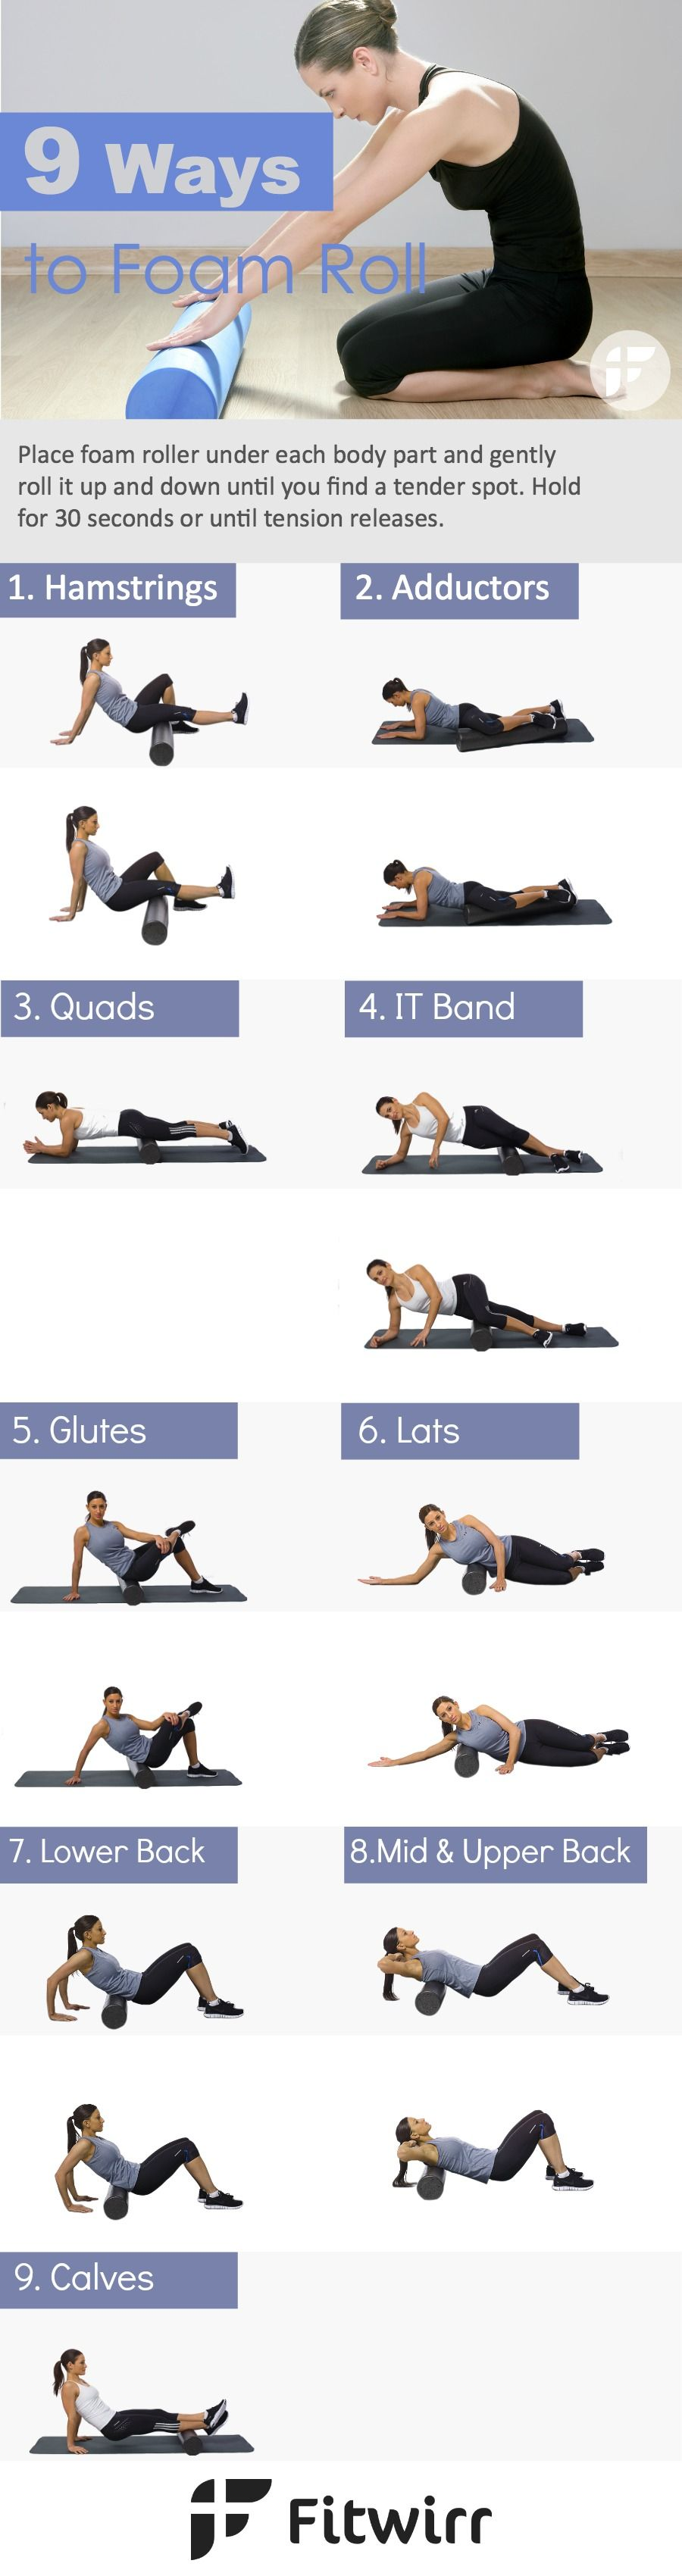 Buy foam roll physical therapy - 41 Best Foam Roller Exercises Images On Pinterest Foam Rolling Foam Roller Stretches And Foam Roller Exercises